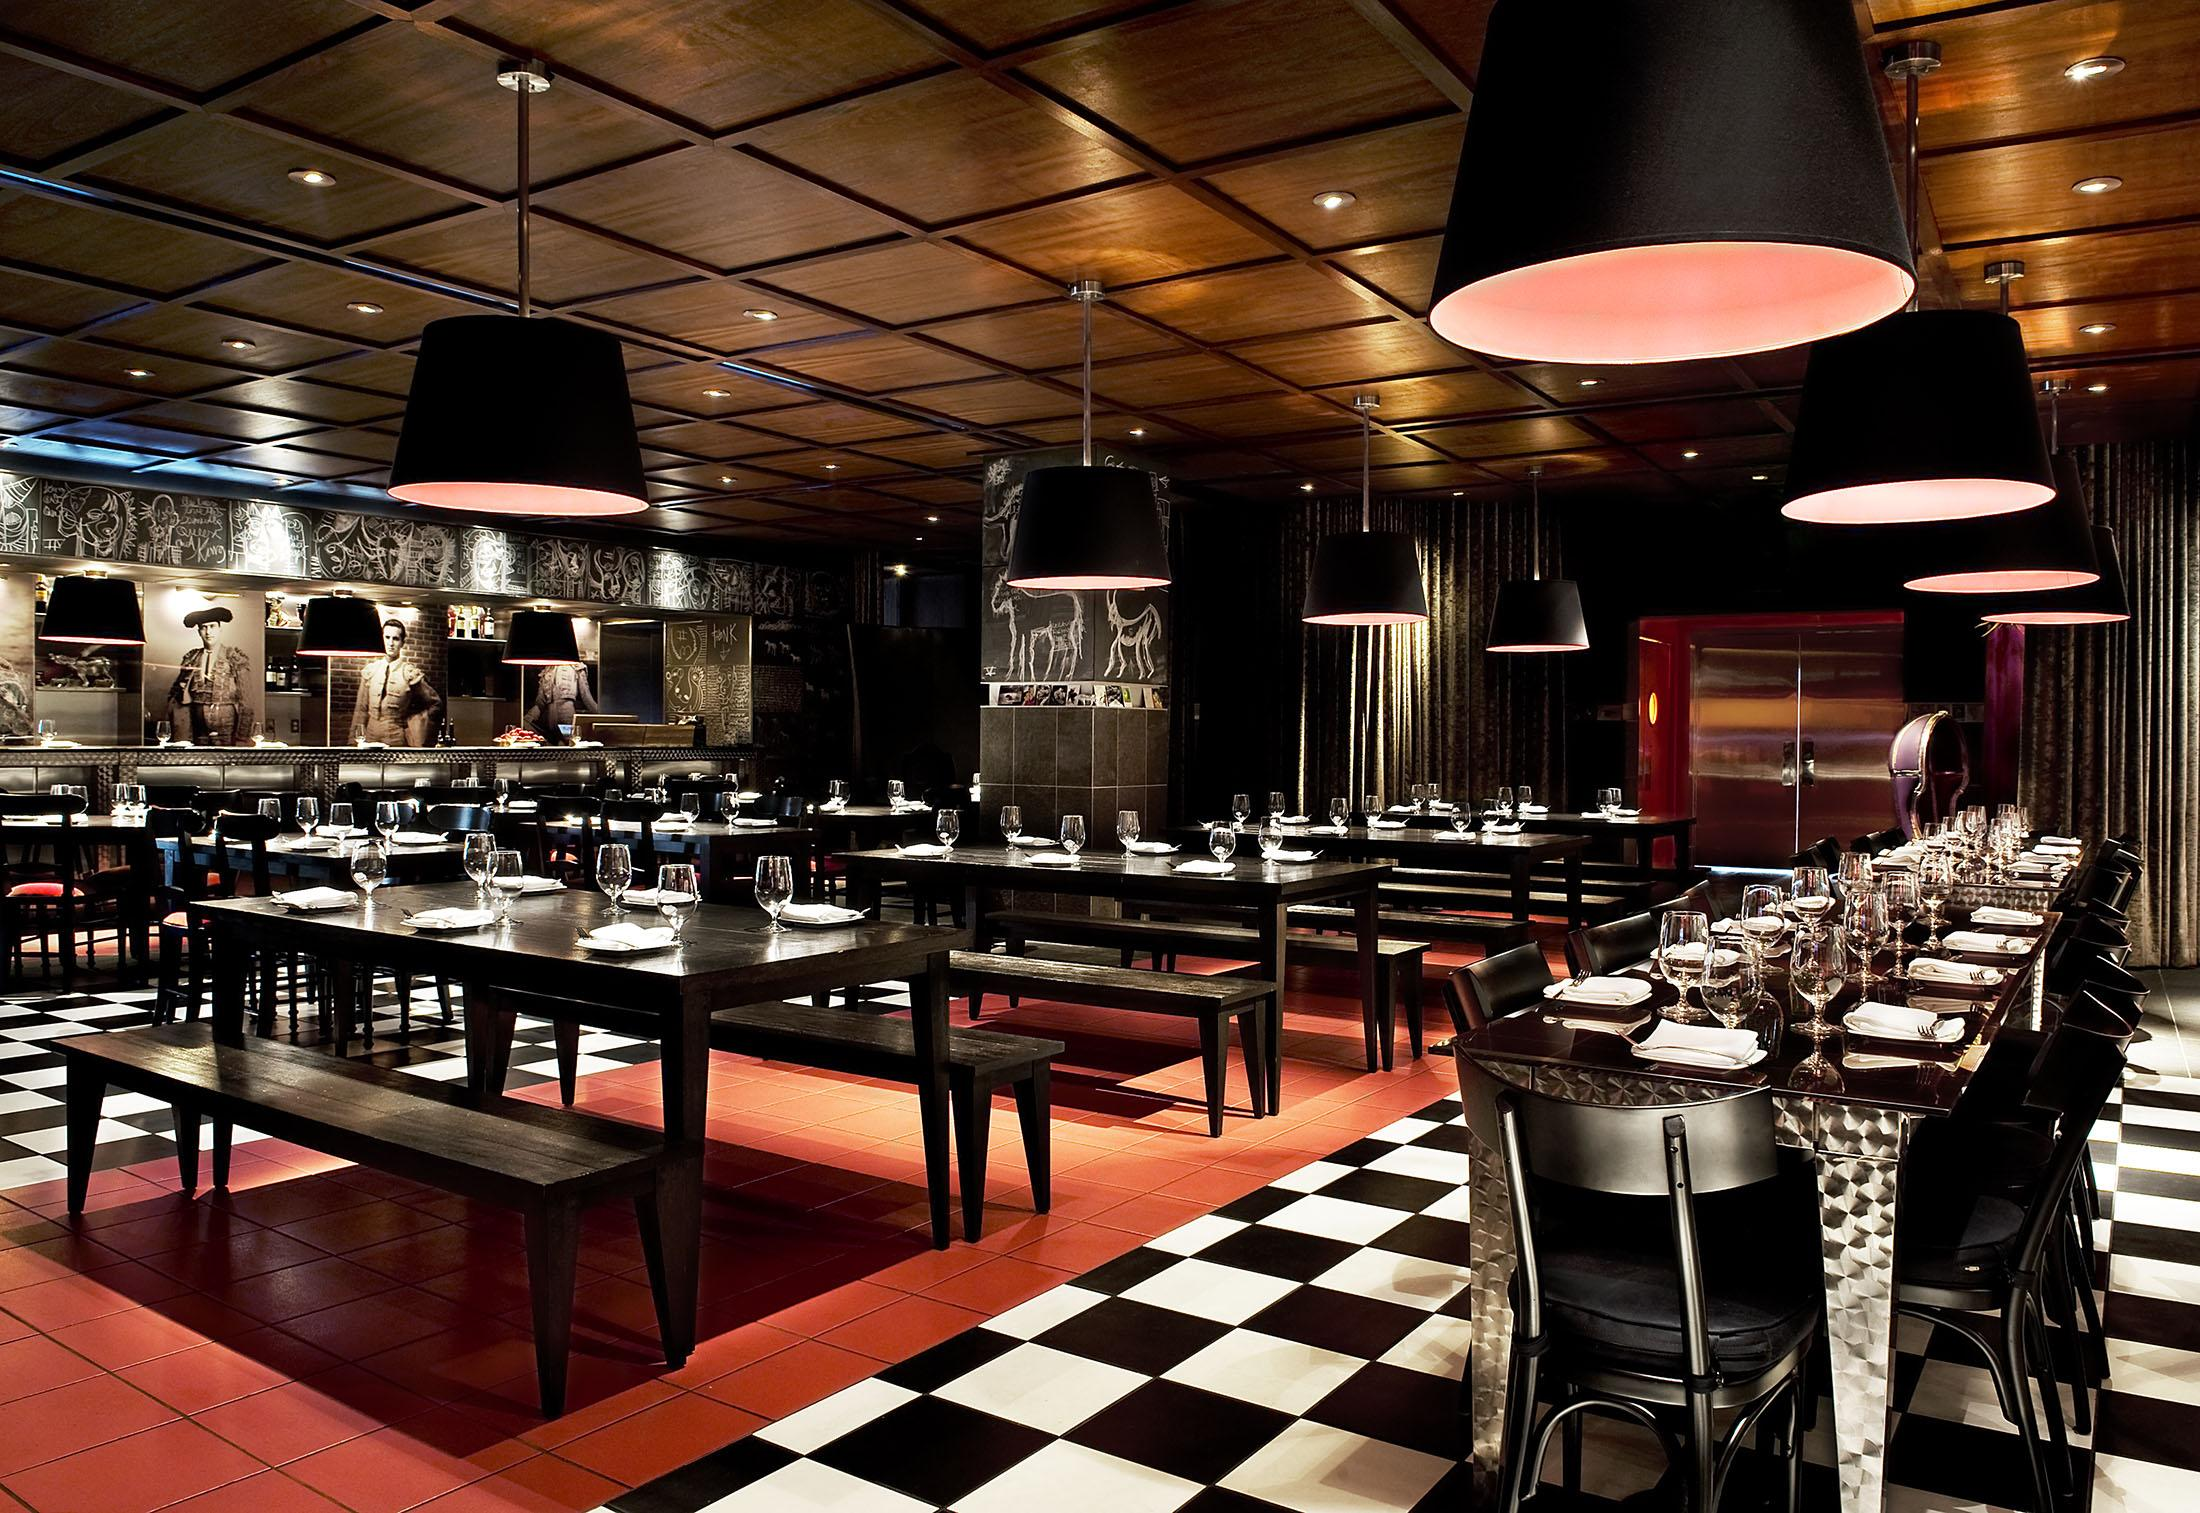 Restaurant with black and white checkered floor